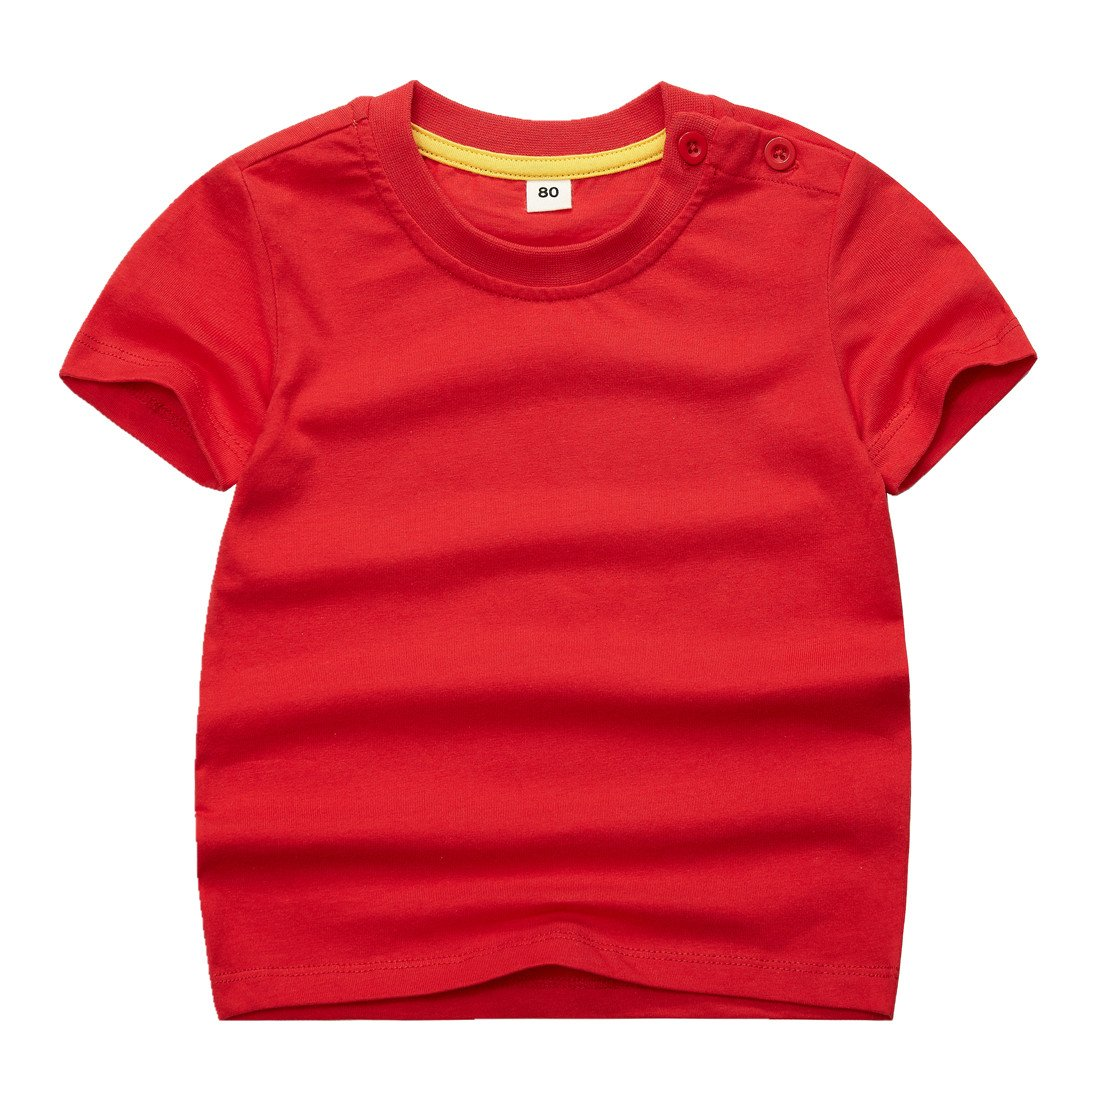 Sooxiwood Little Boys T-Shirt Solid Short Sleeve Summer Size 6 Red